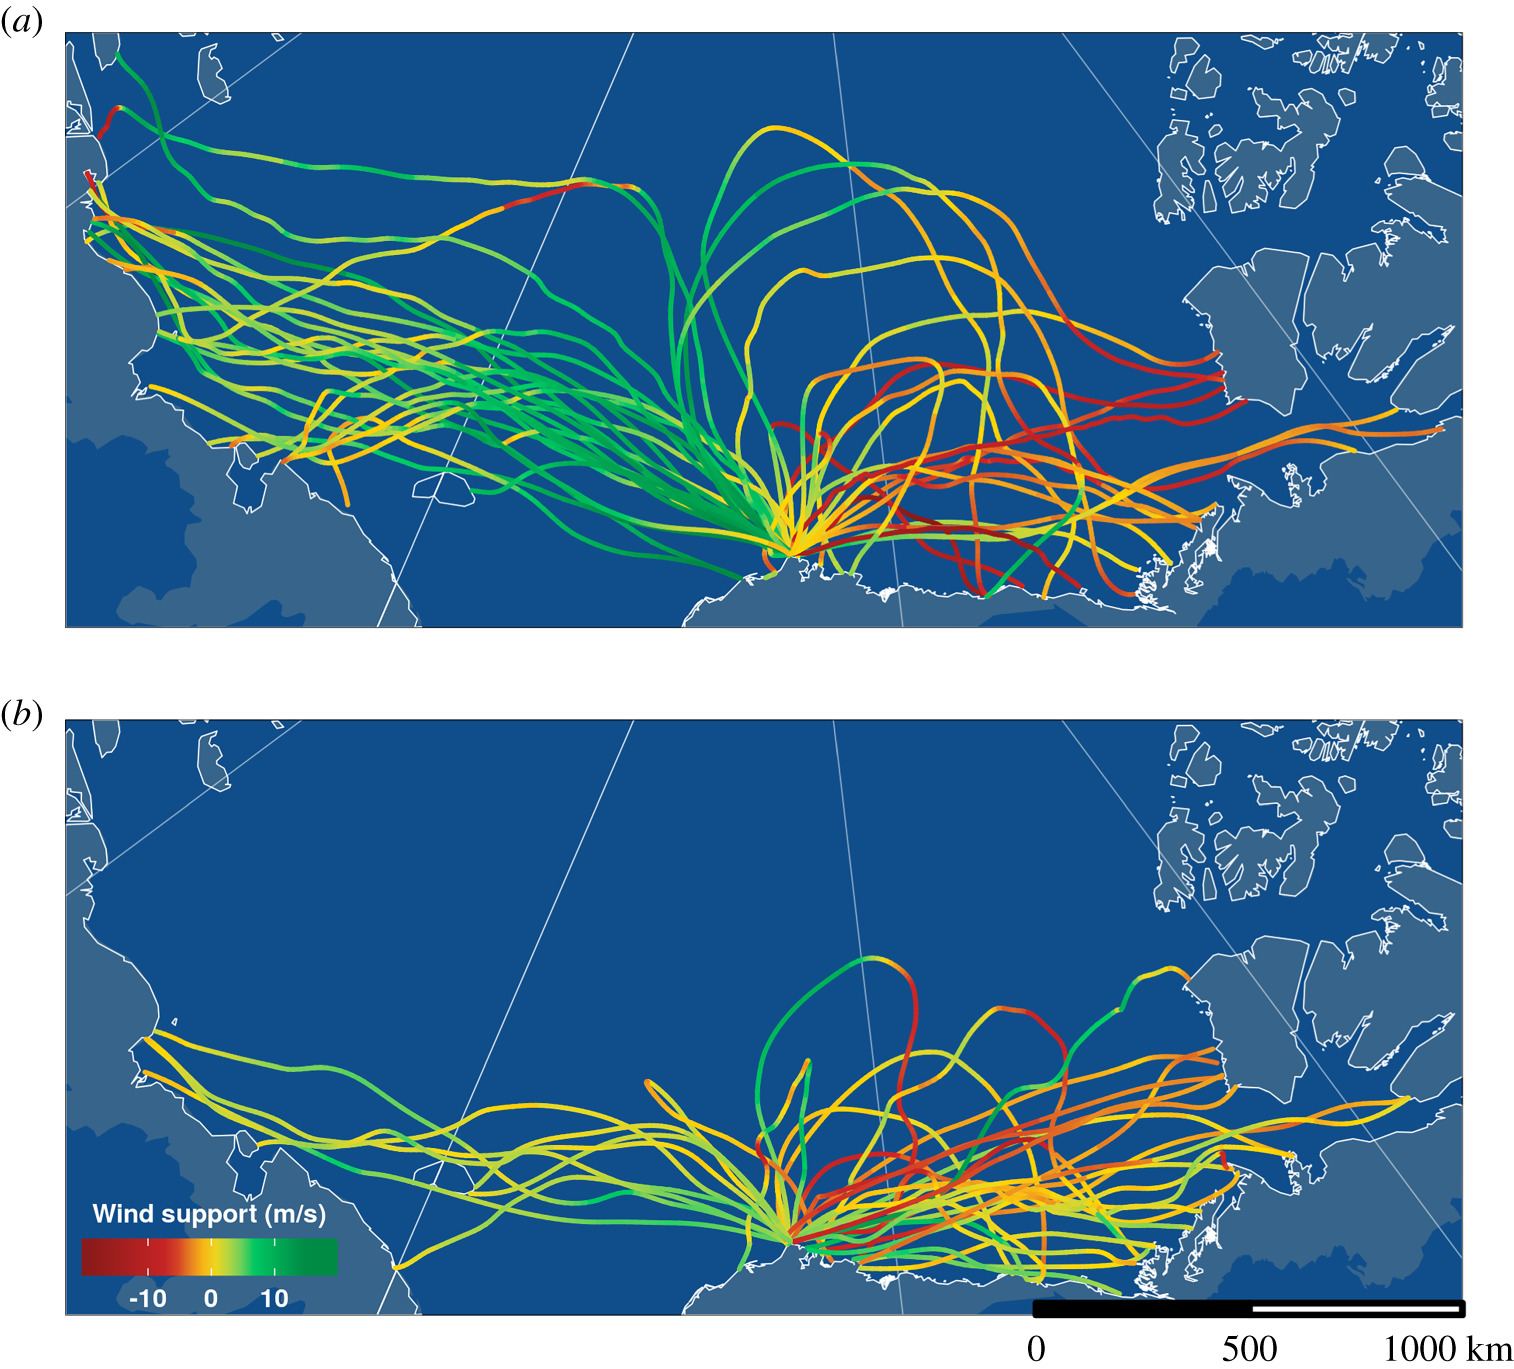 Tracks of male pectoral sandpipers that left Utqiagvik, Alaska (lower centre of the map) during the breeding season in June 2012 (top) and 2014 (bottom). Track colour indicates wind support, i.e. the length of the wind vector in the direction of the bird's movement (ground vector), calculated using wind data at 750 m altitude (ECMWF ERA Interim). For a movie of these flights and for individual tracks see https://www.youtube.com/watch?v=A-Q5J1wRBUA&feature=youtu.be. (credit: Max Planck Institute for Ornithology; from [Krietsch et al, 2020])